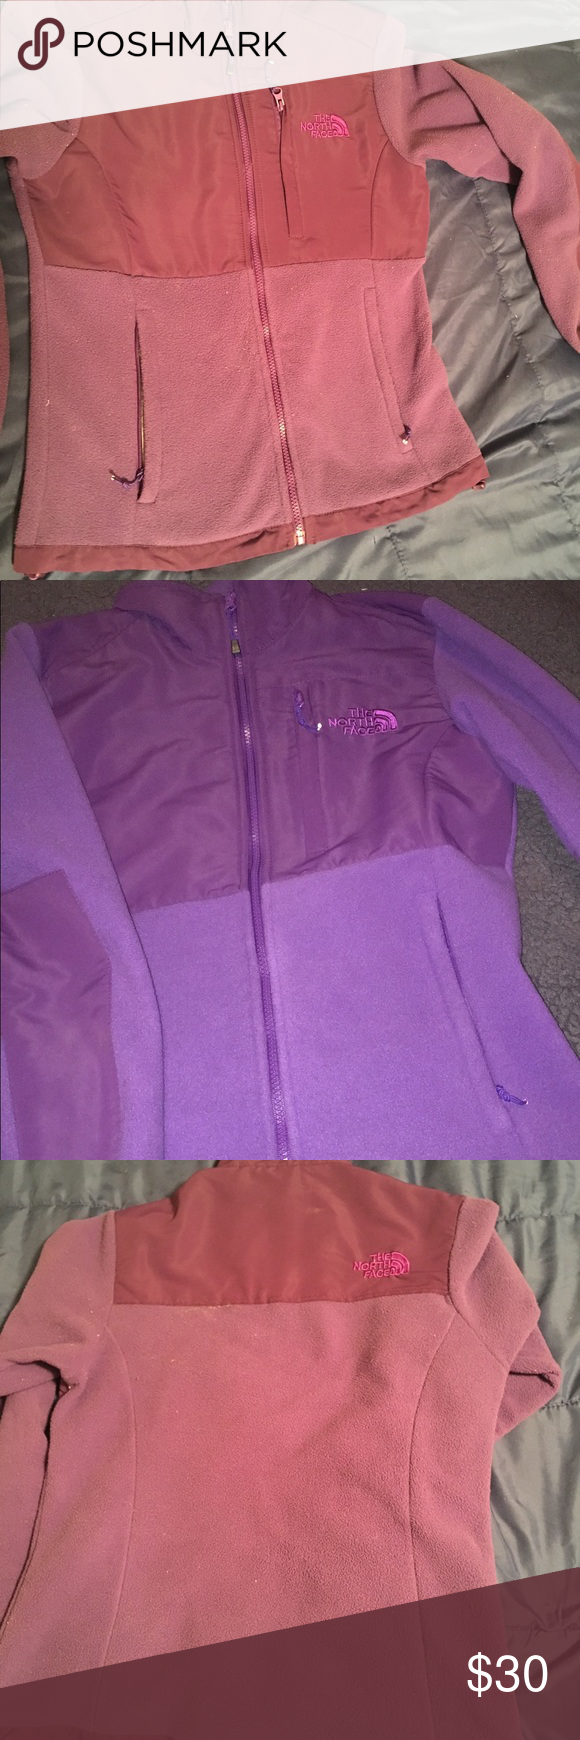 Brand new north face fleece jacket without tags north face fleece